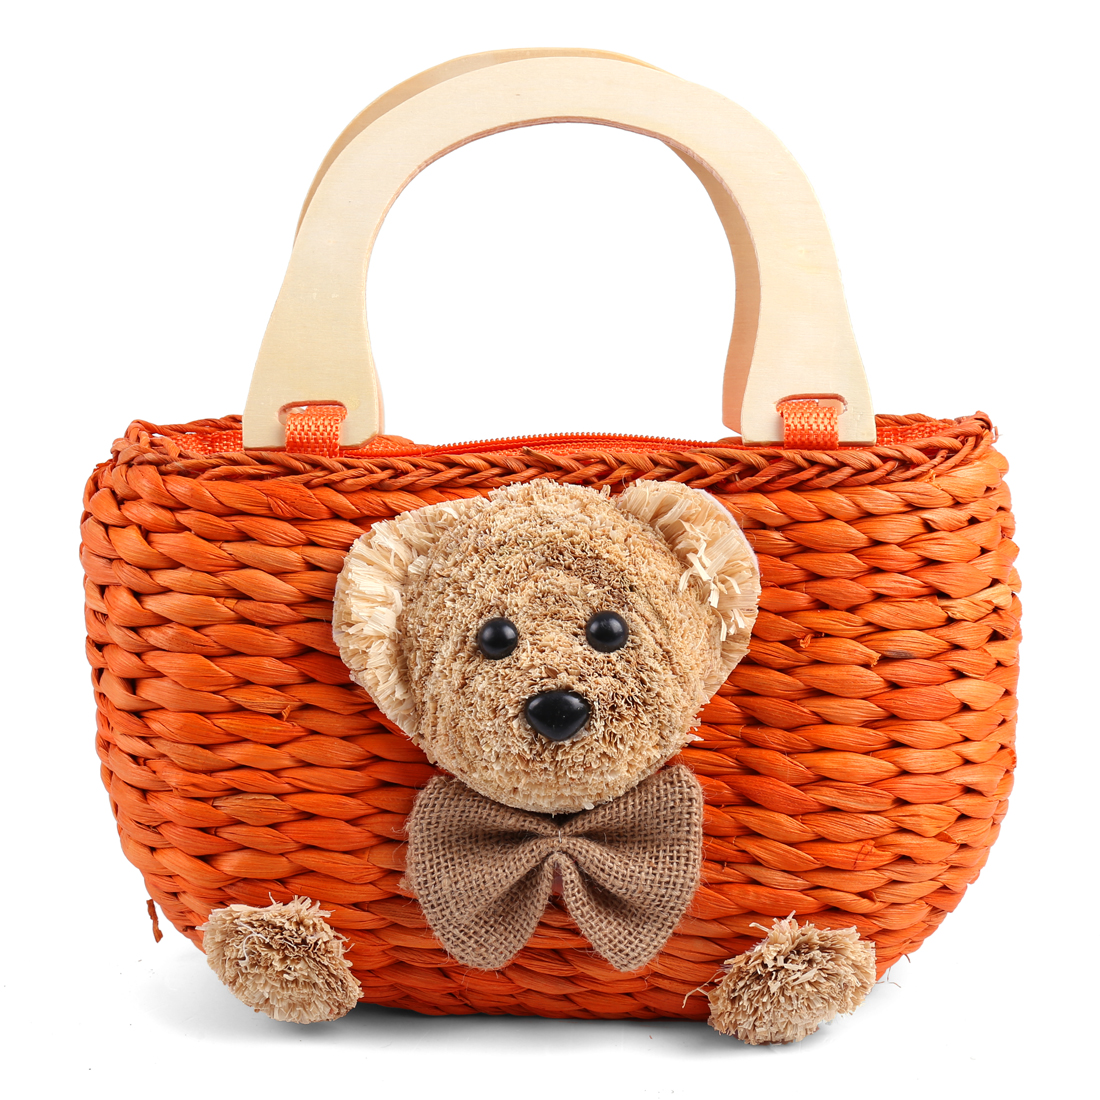 Girls Chic Orange Color Solid Bear Embellished Woven Straw Handbag